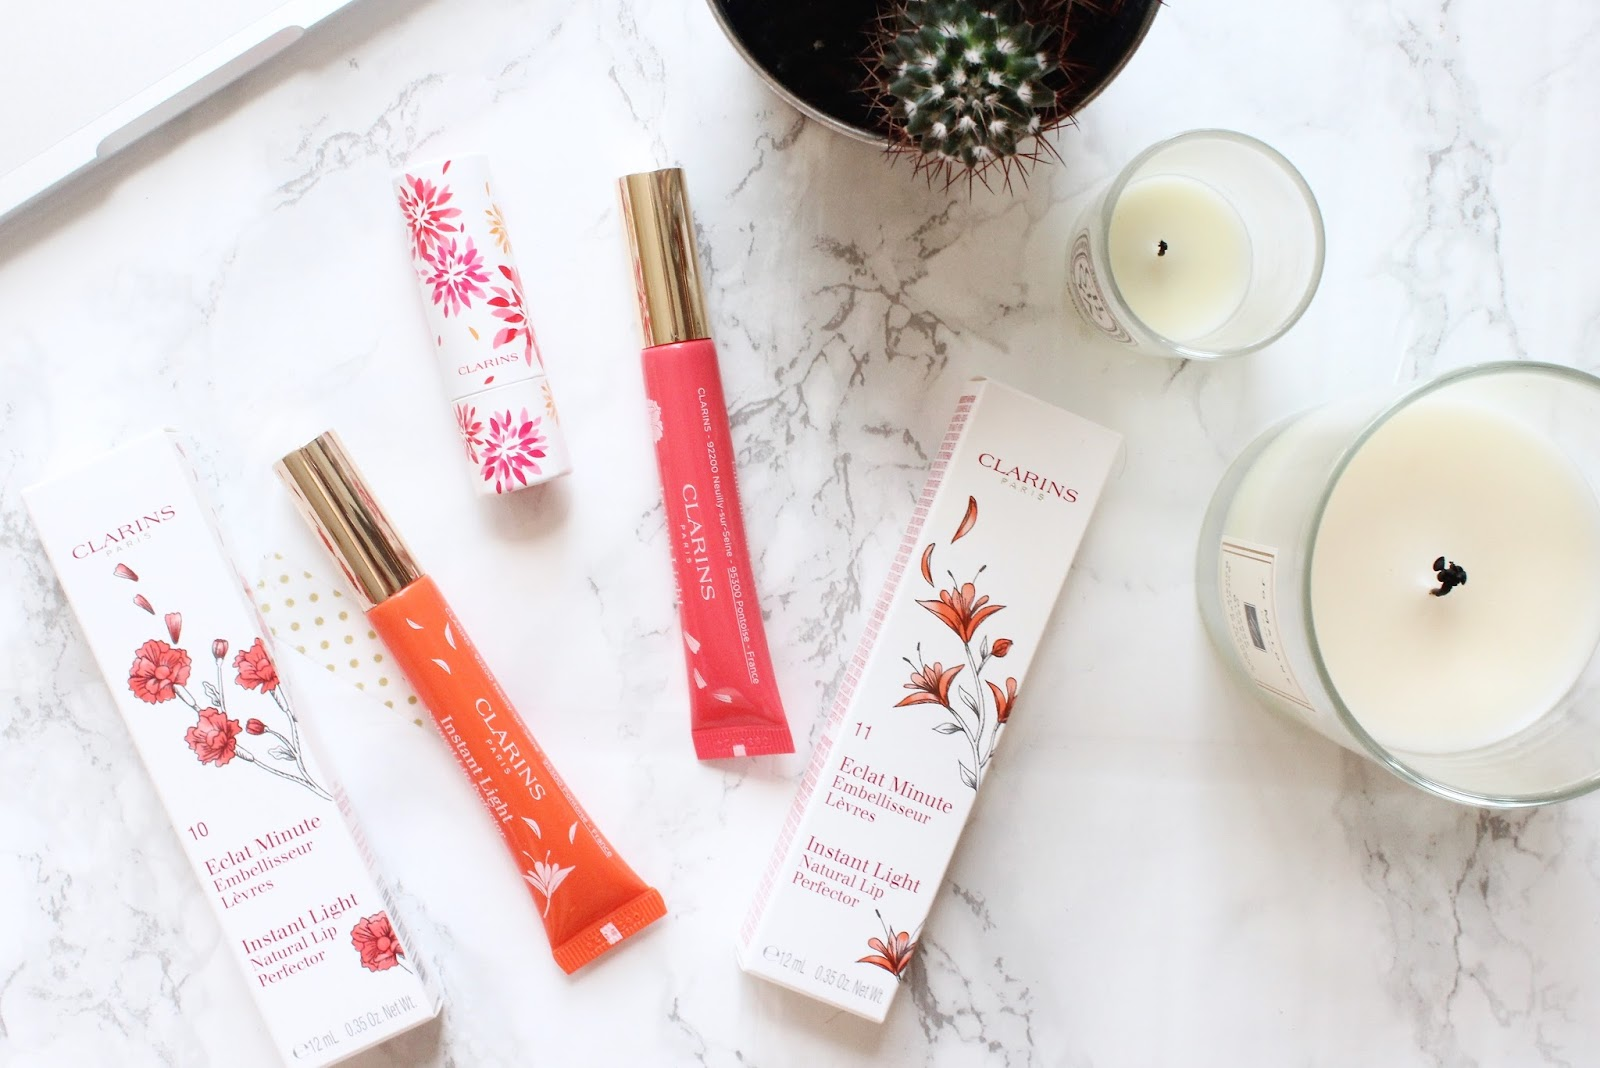 Clarins Limited Edition Collection